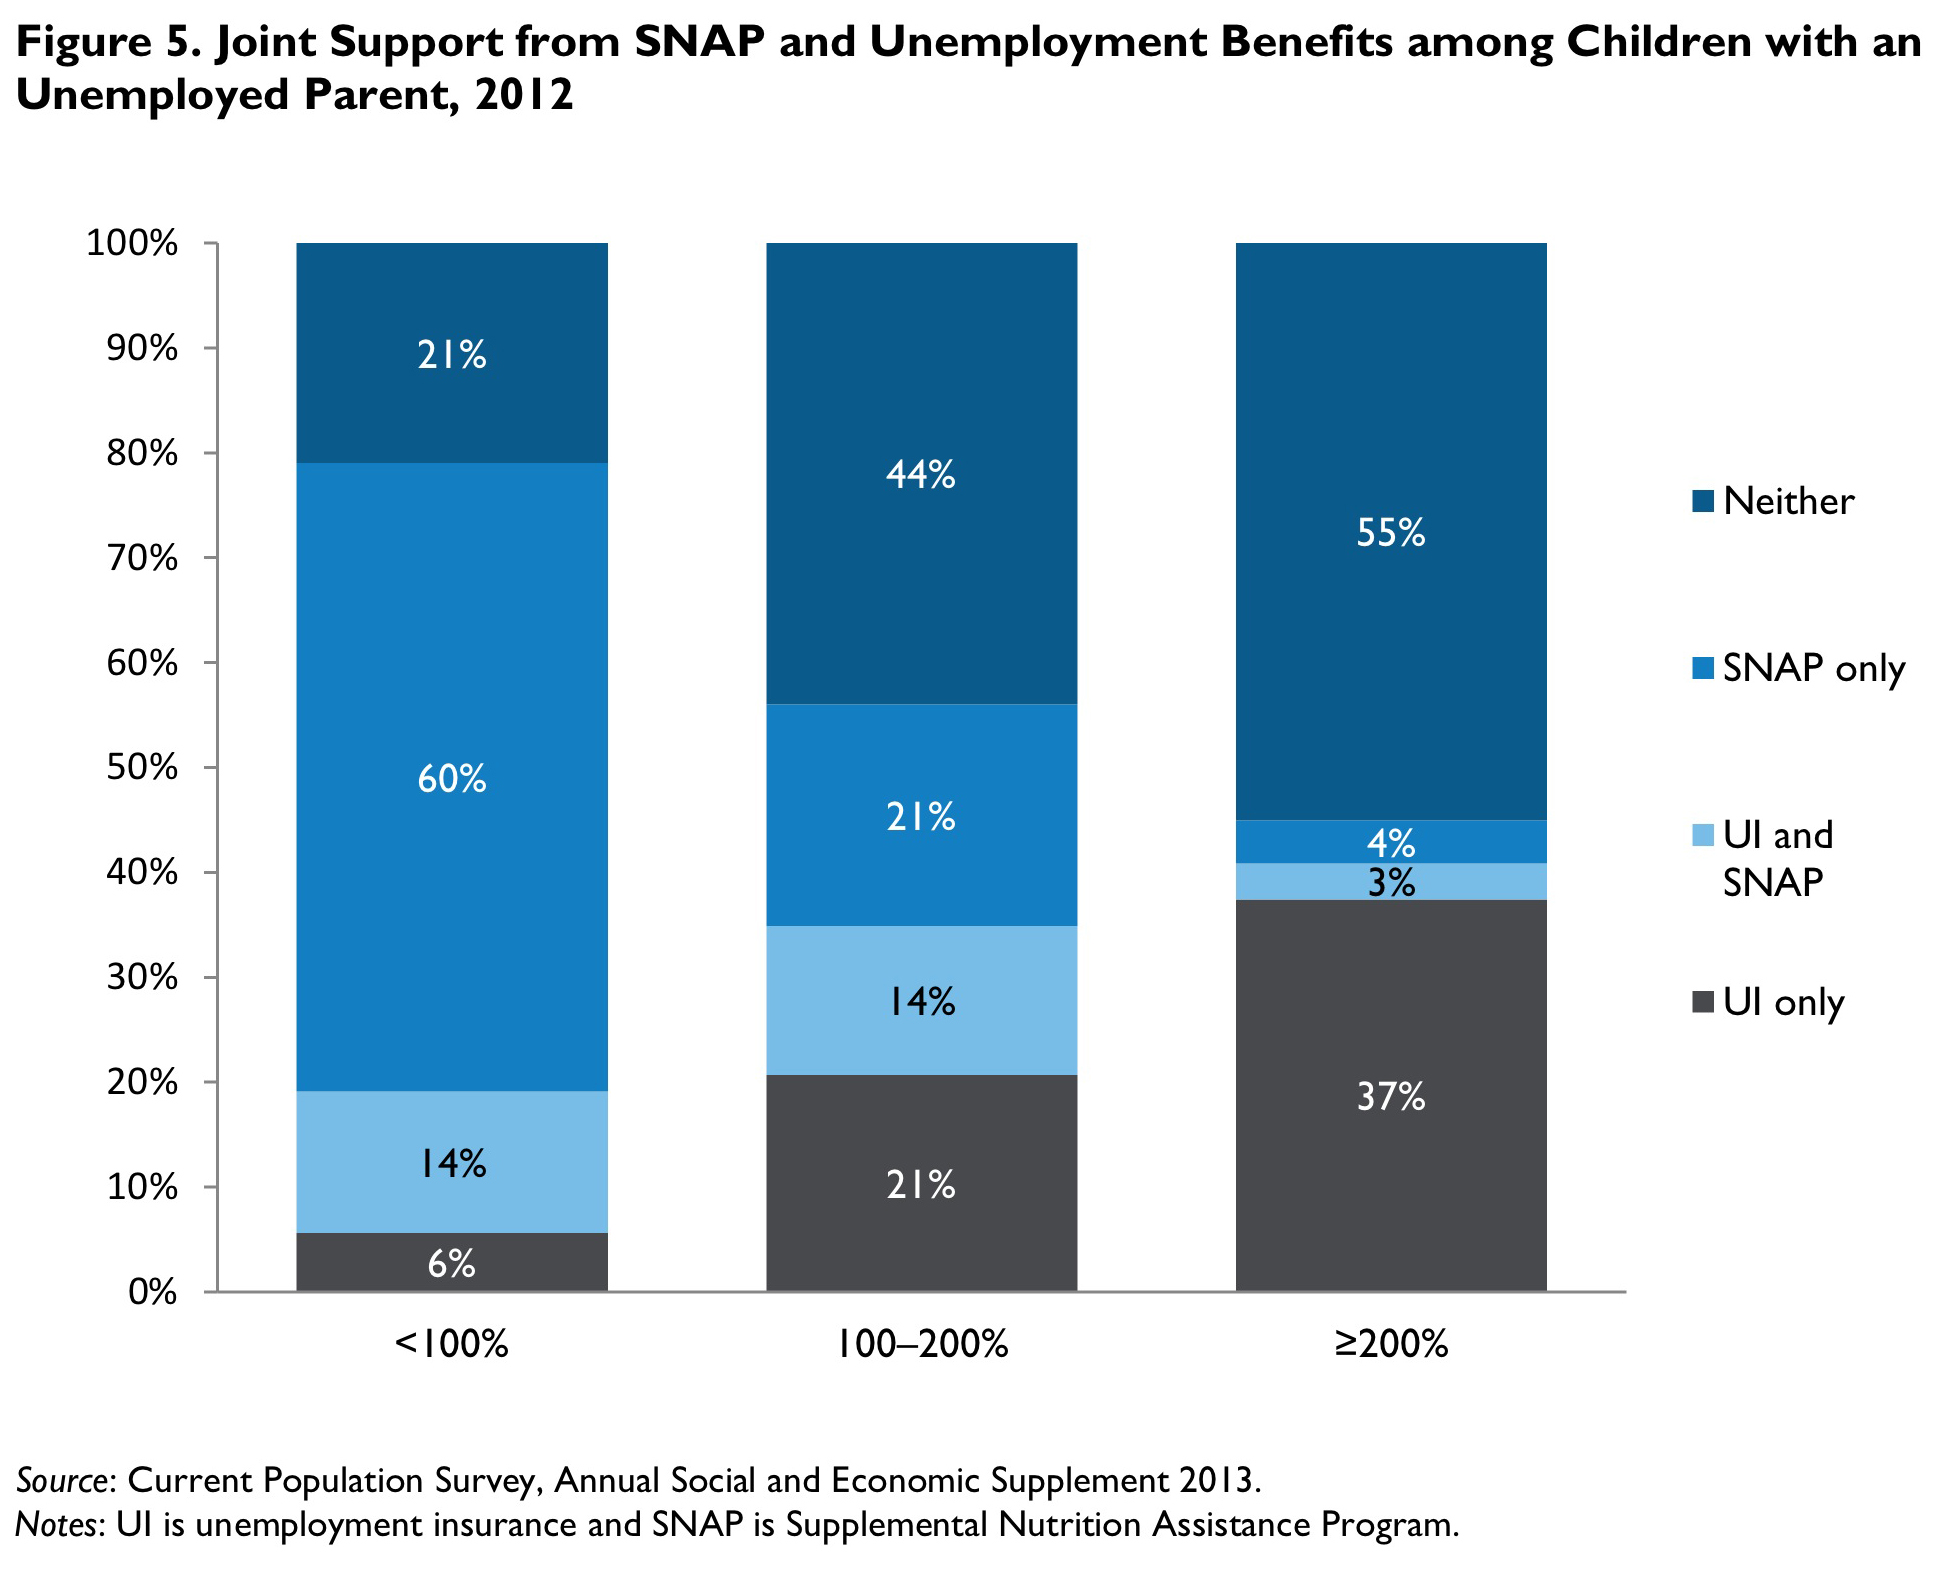 Figure 5. Joint Support from SNAP and Unemployment Benefits among Children with an Unemployed Parent, 2012